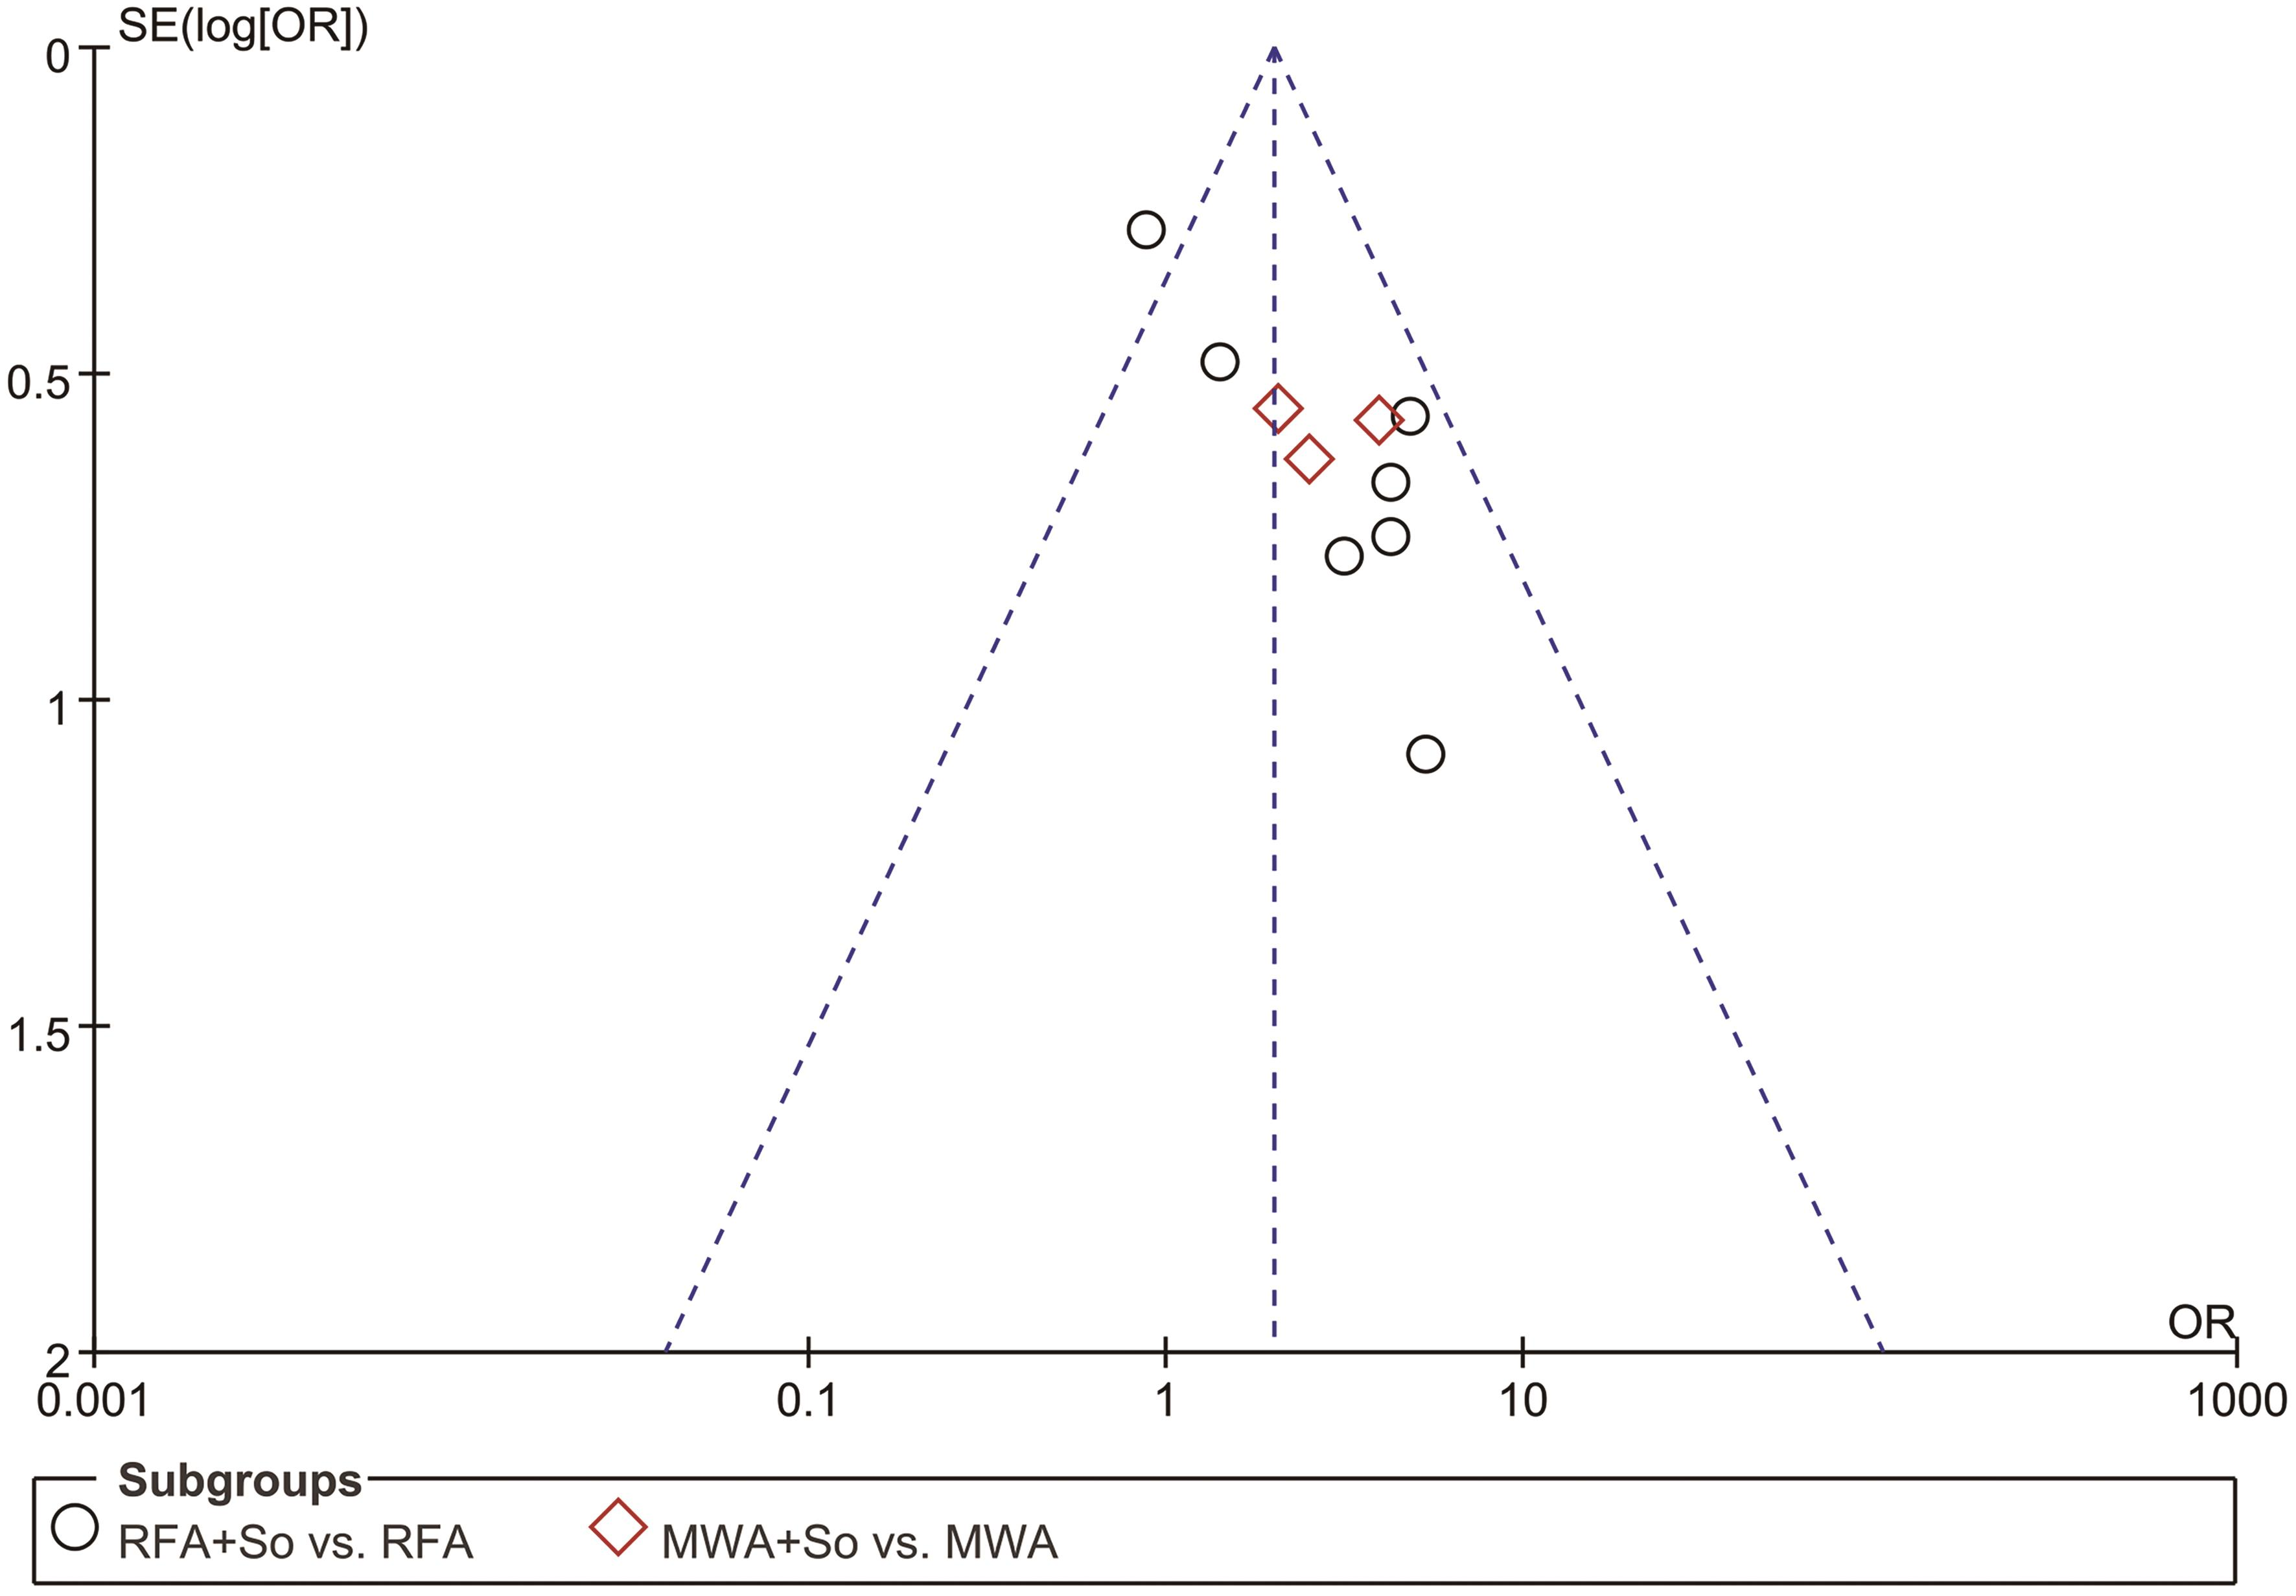 Funnel plot of 1-year OS with 95% CI to assess publication bias.